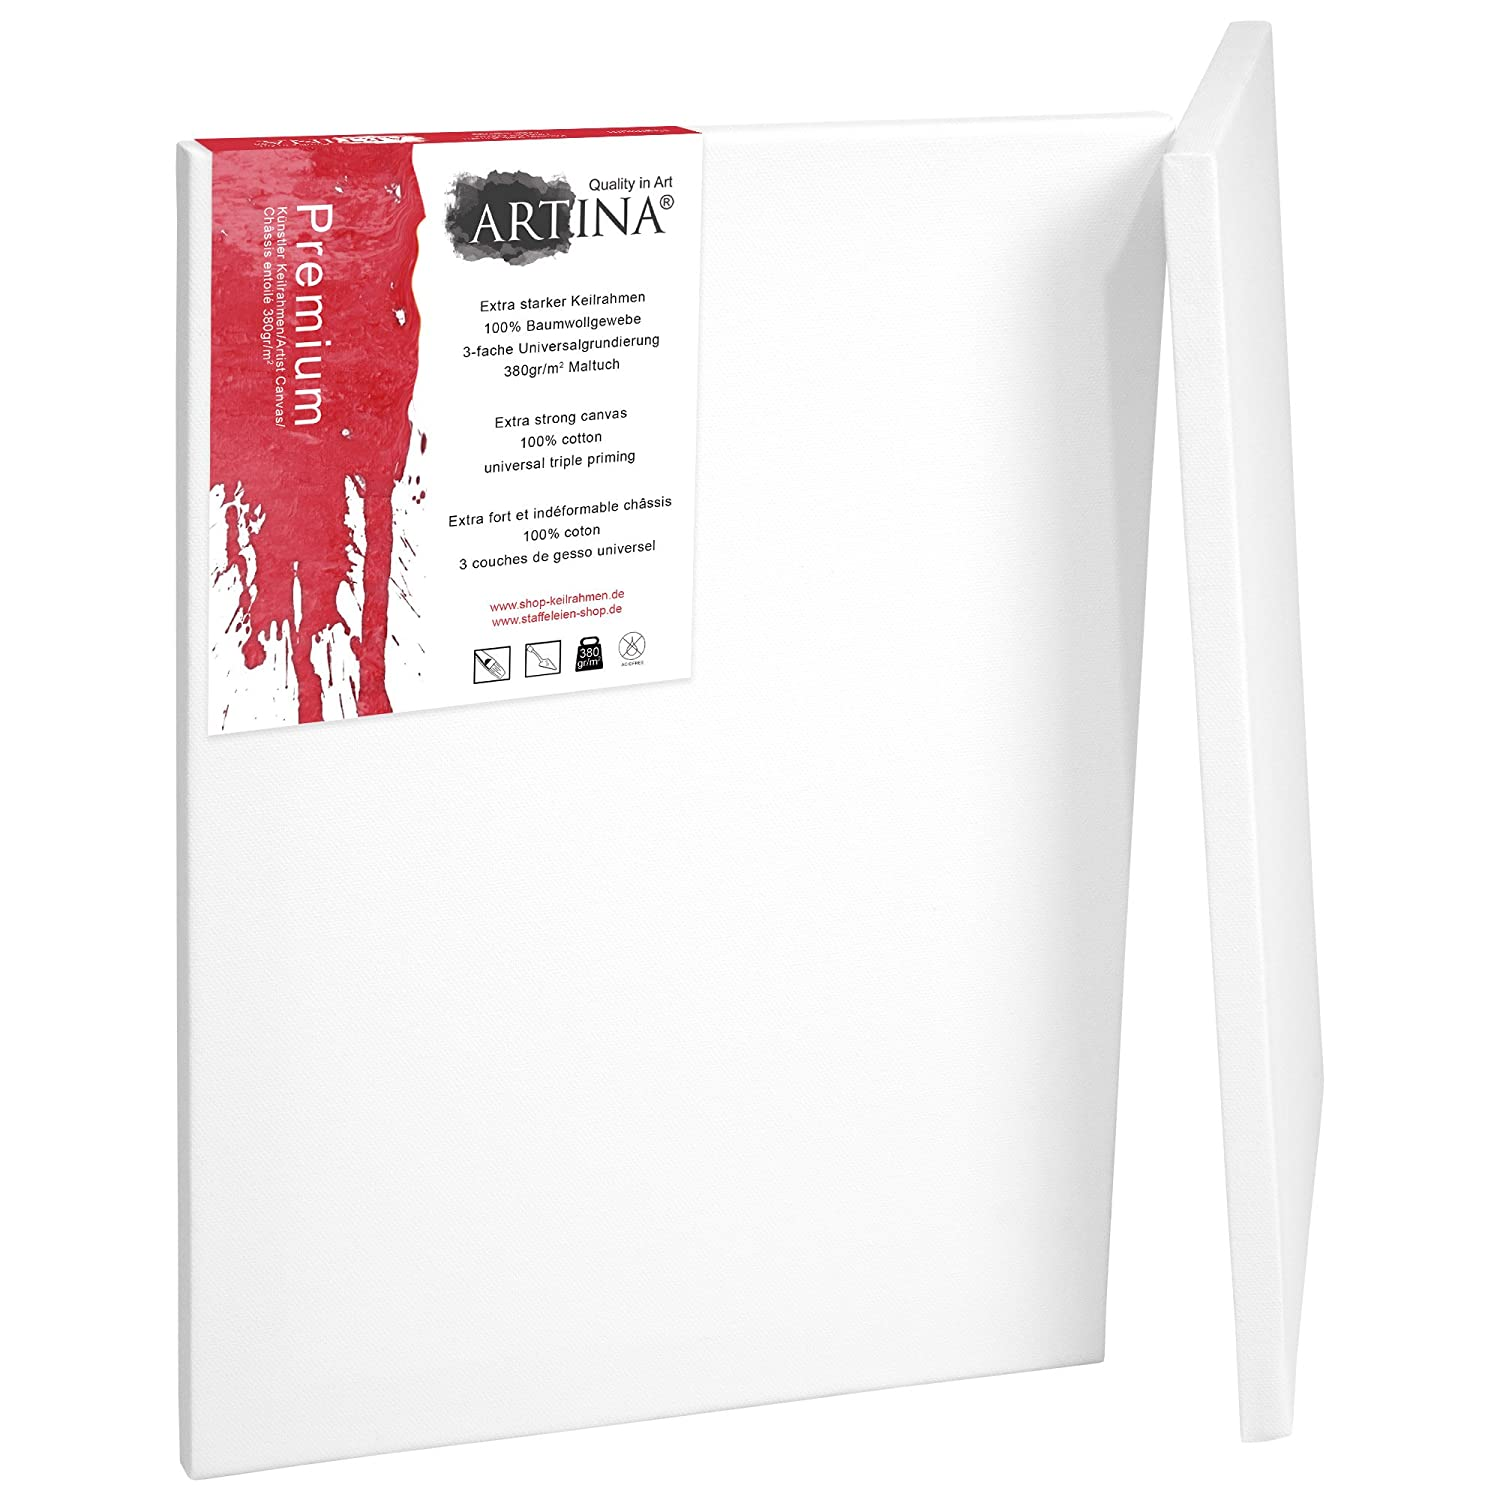 Artina 10 Blank Art Canvases 10 x 10 cm Premium Quality Artist Canvas Bulk Stretched & Triple Primed 4 x 4 Inch